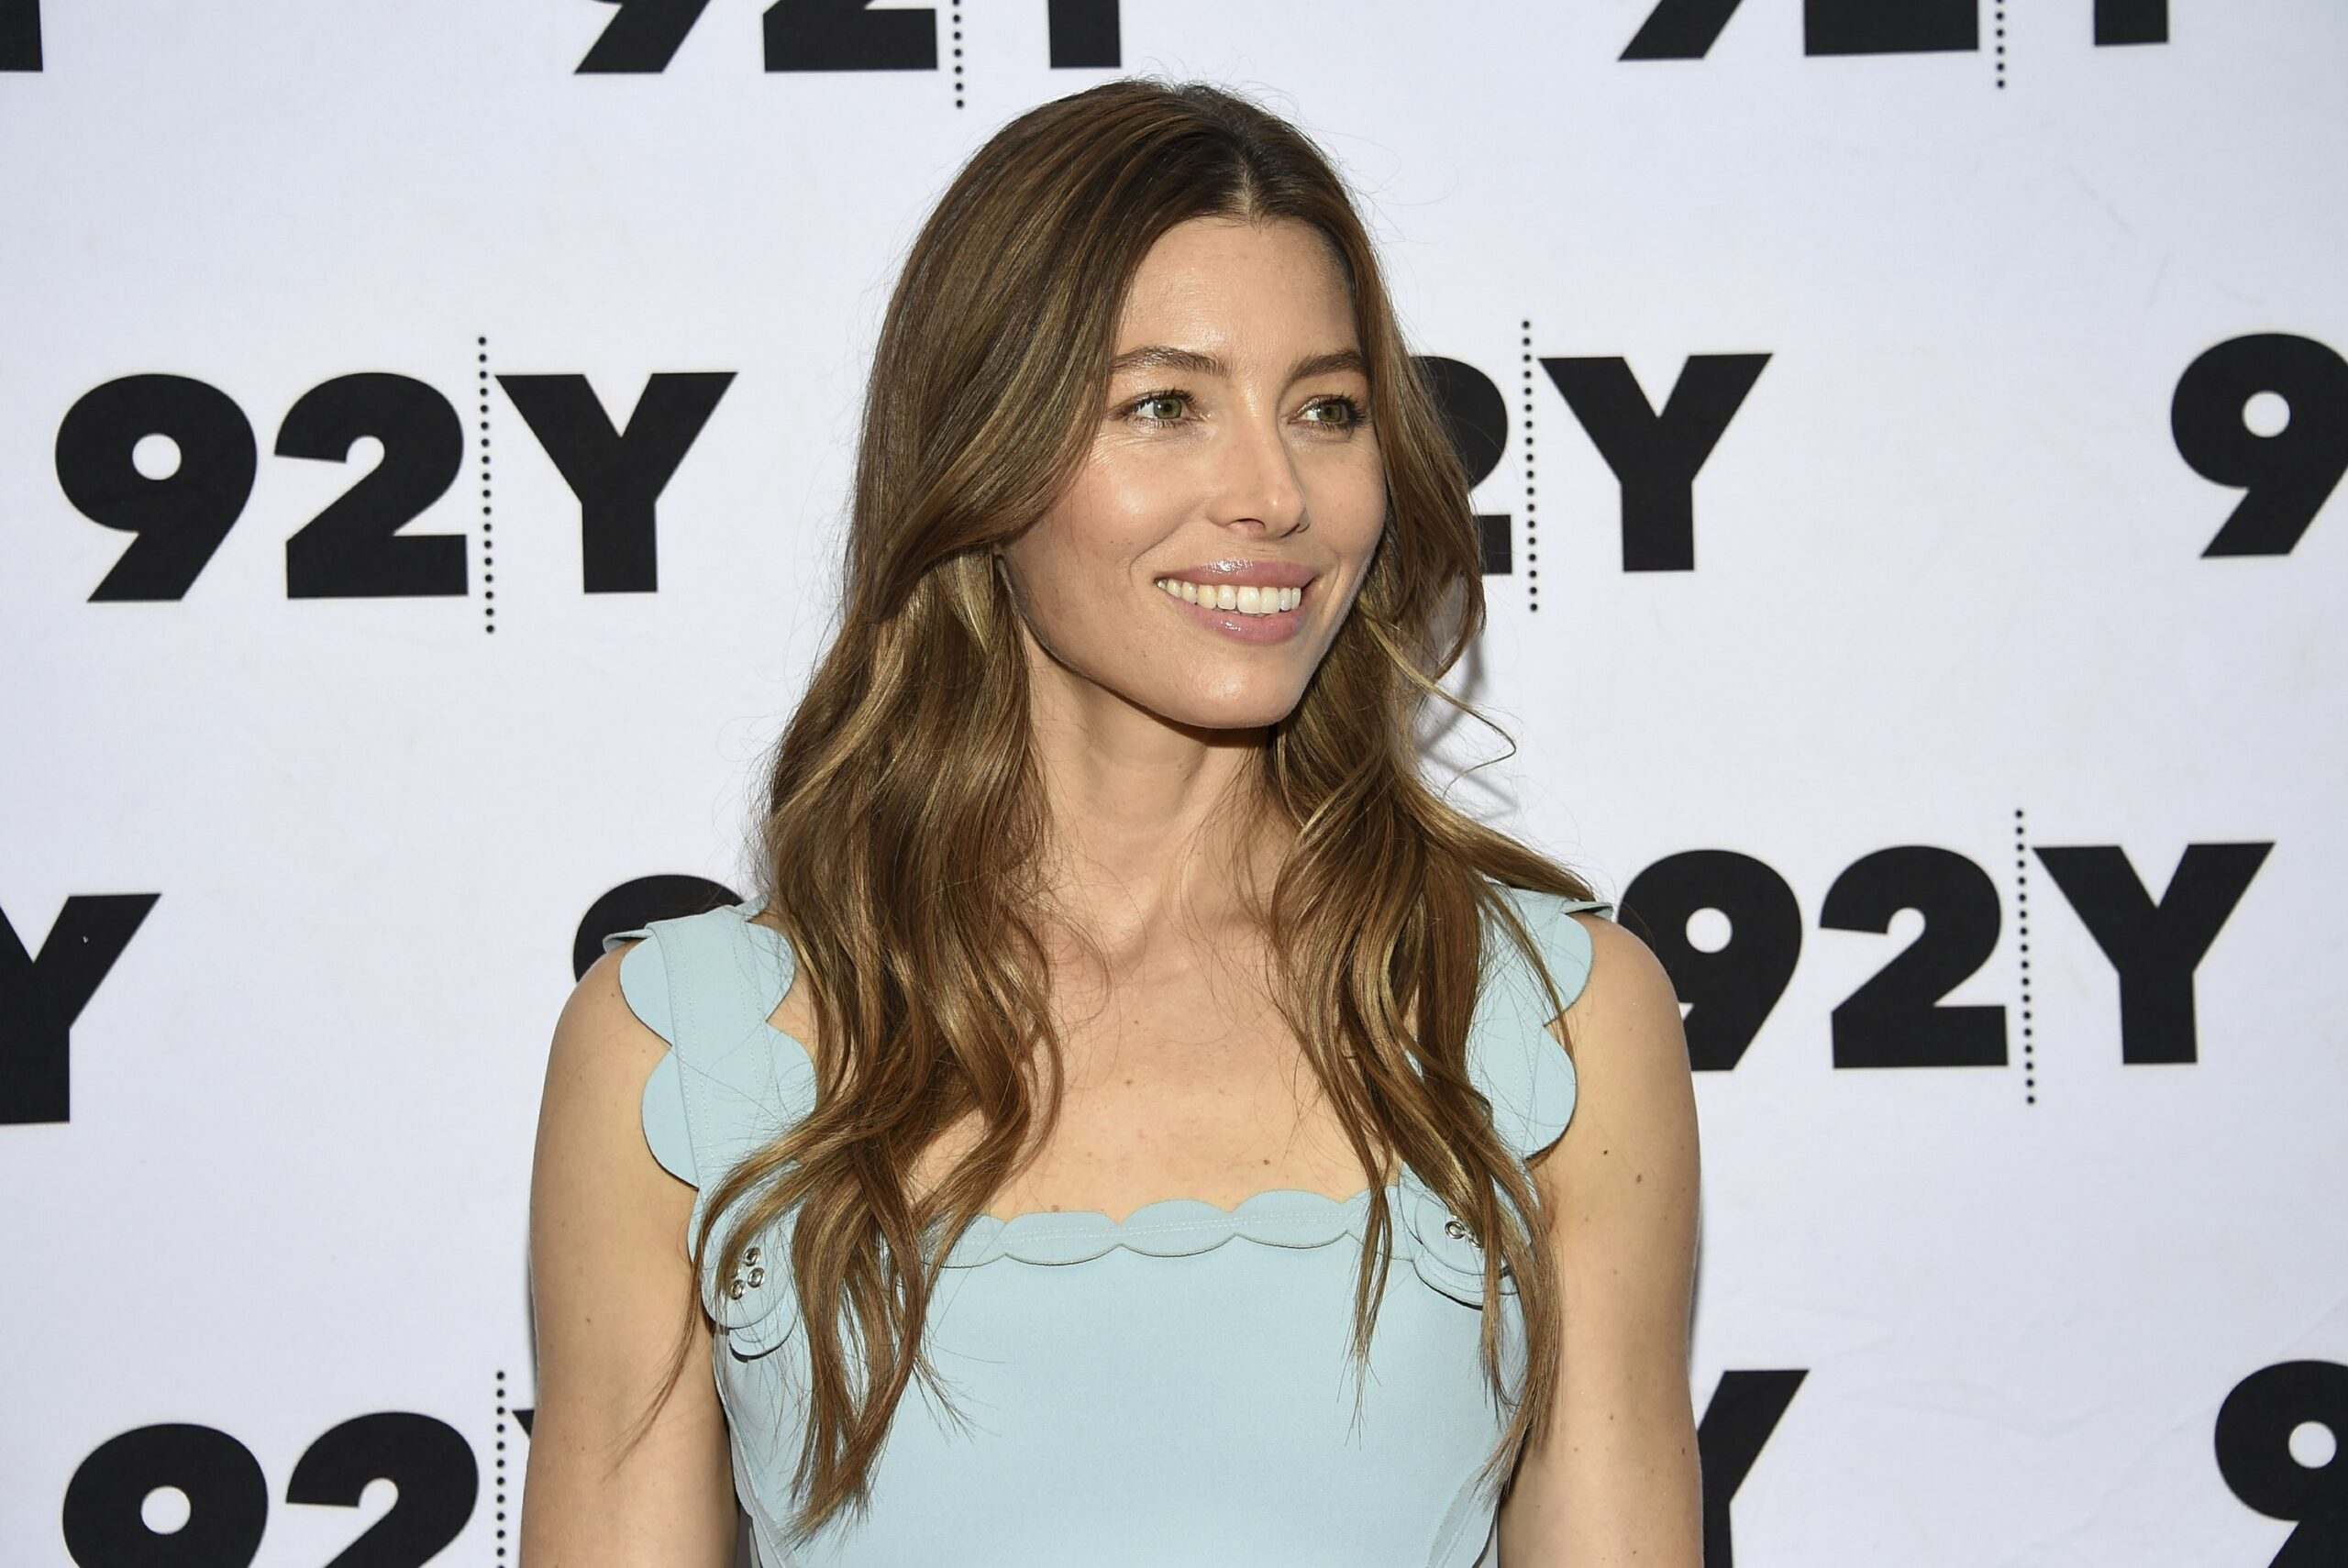 Jessica Biel Biography, Facts & Life Story Updated 2021